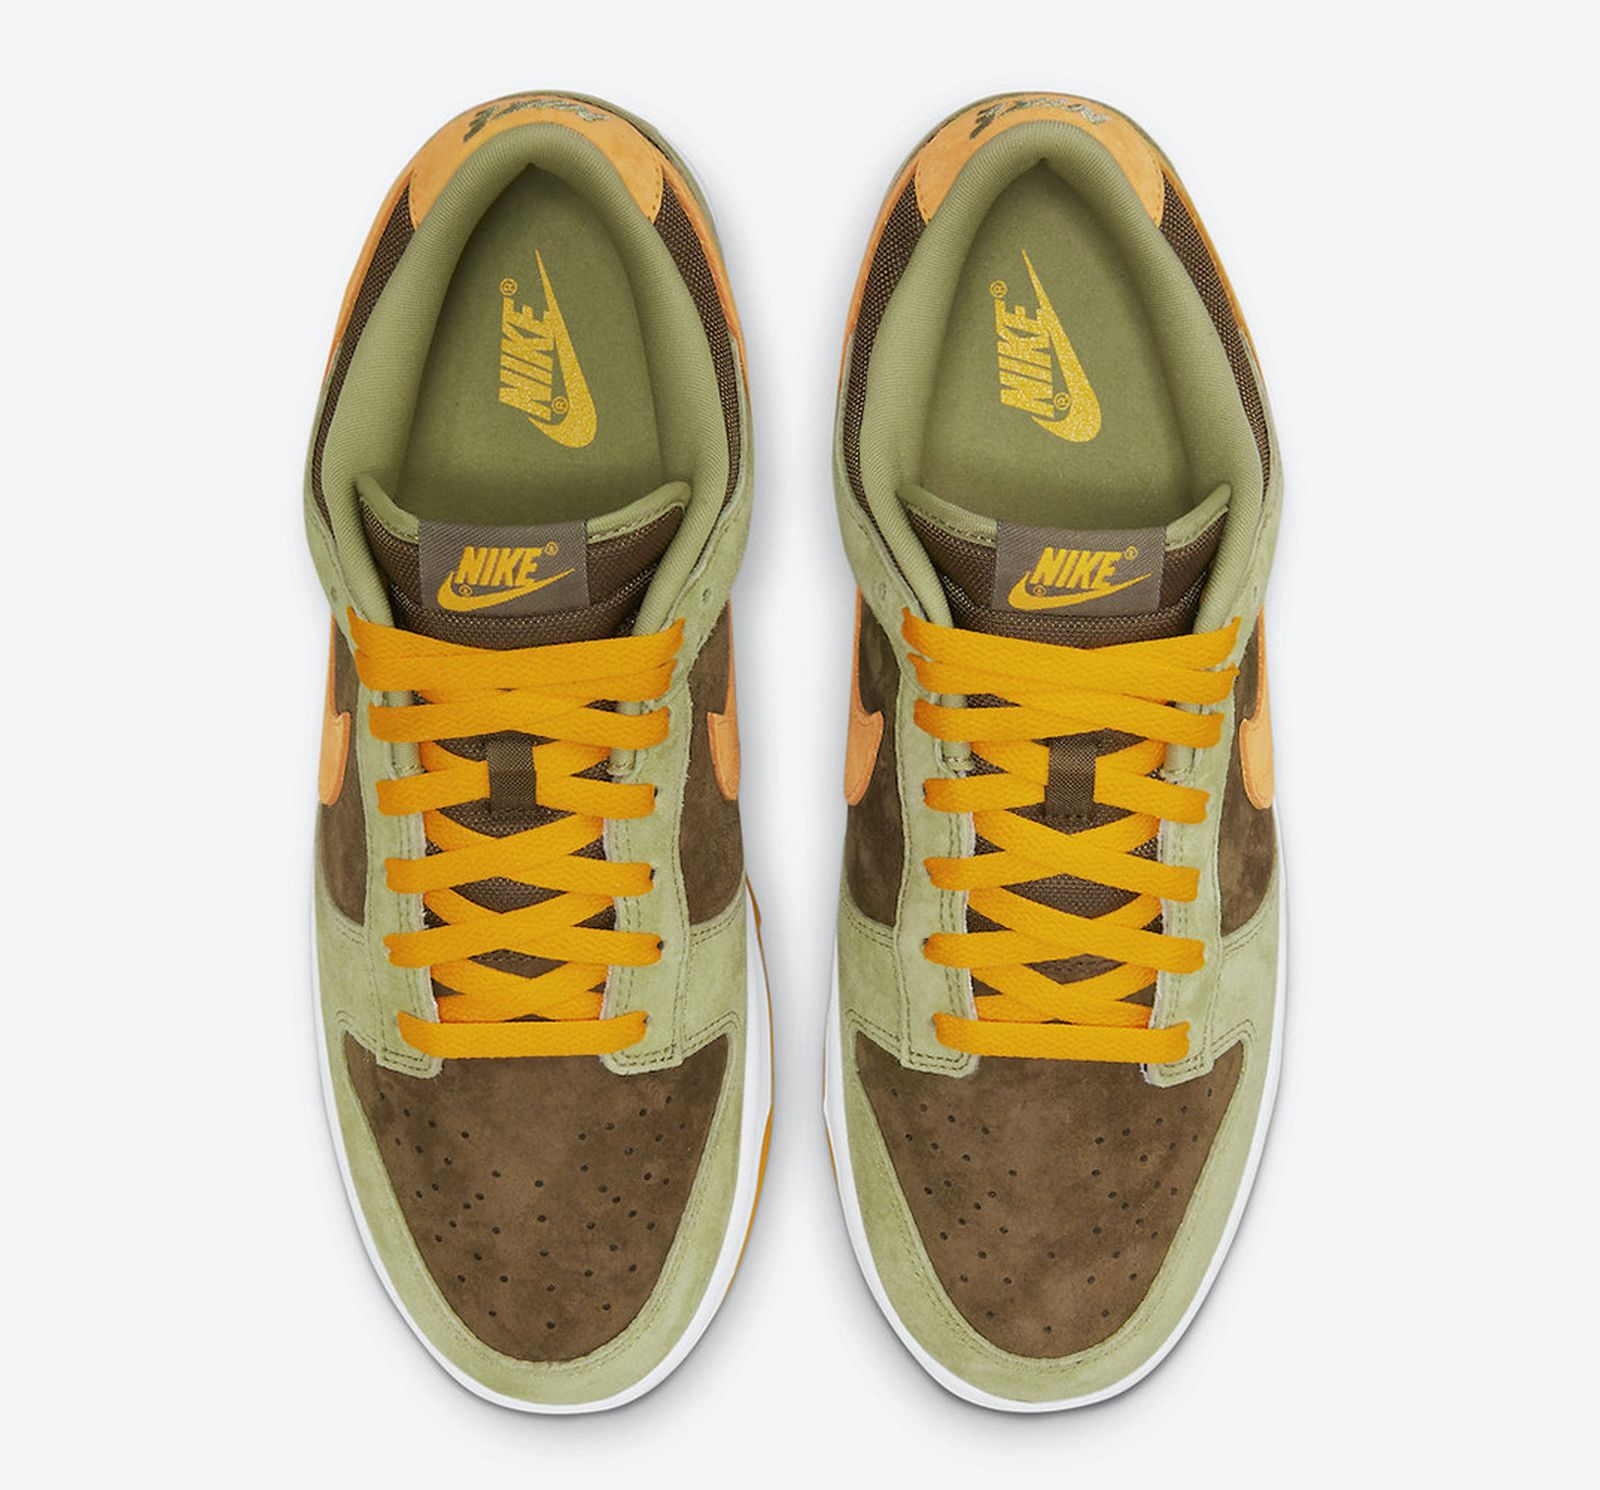 nike-dunk-low-dusty-olive-release-date-price-11